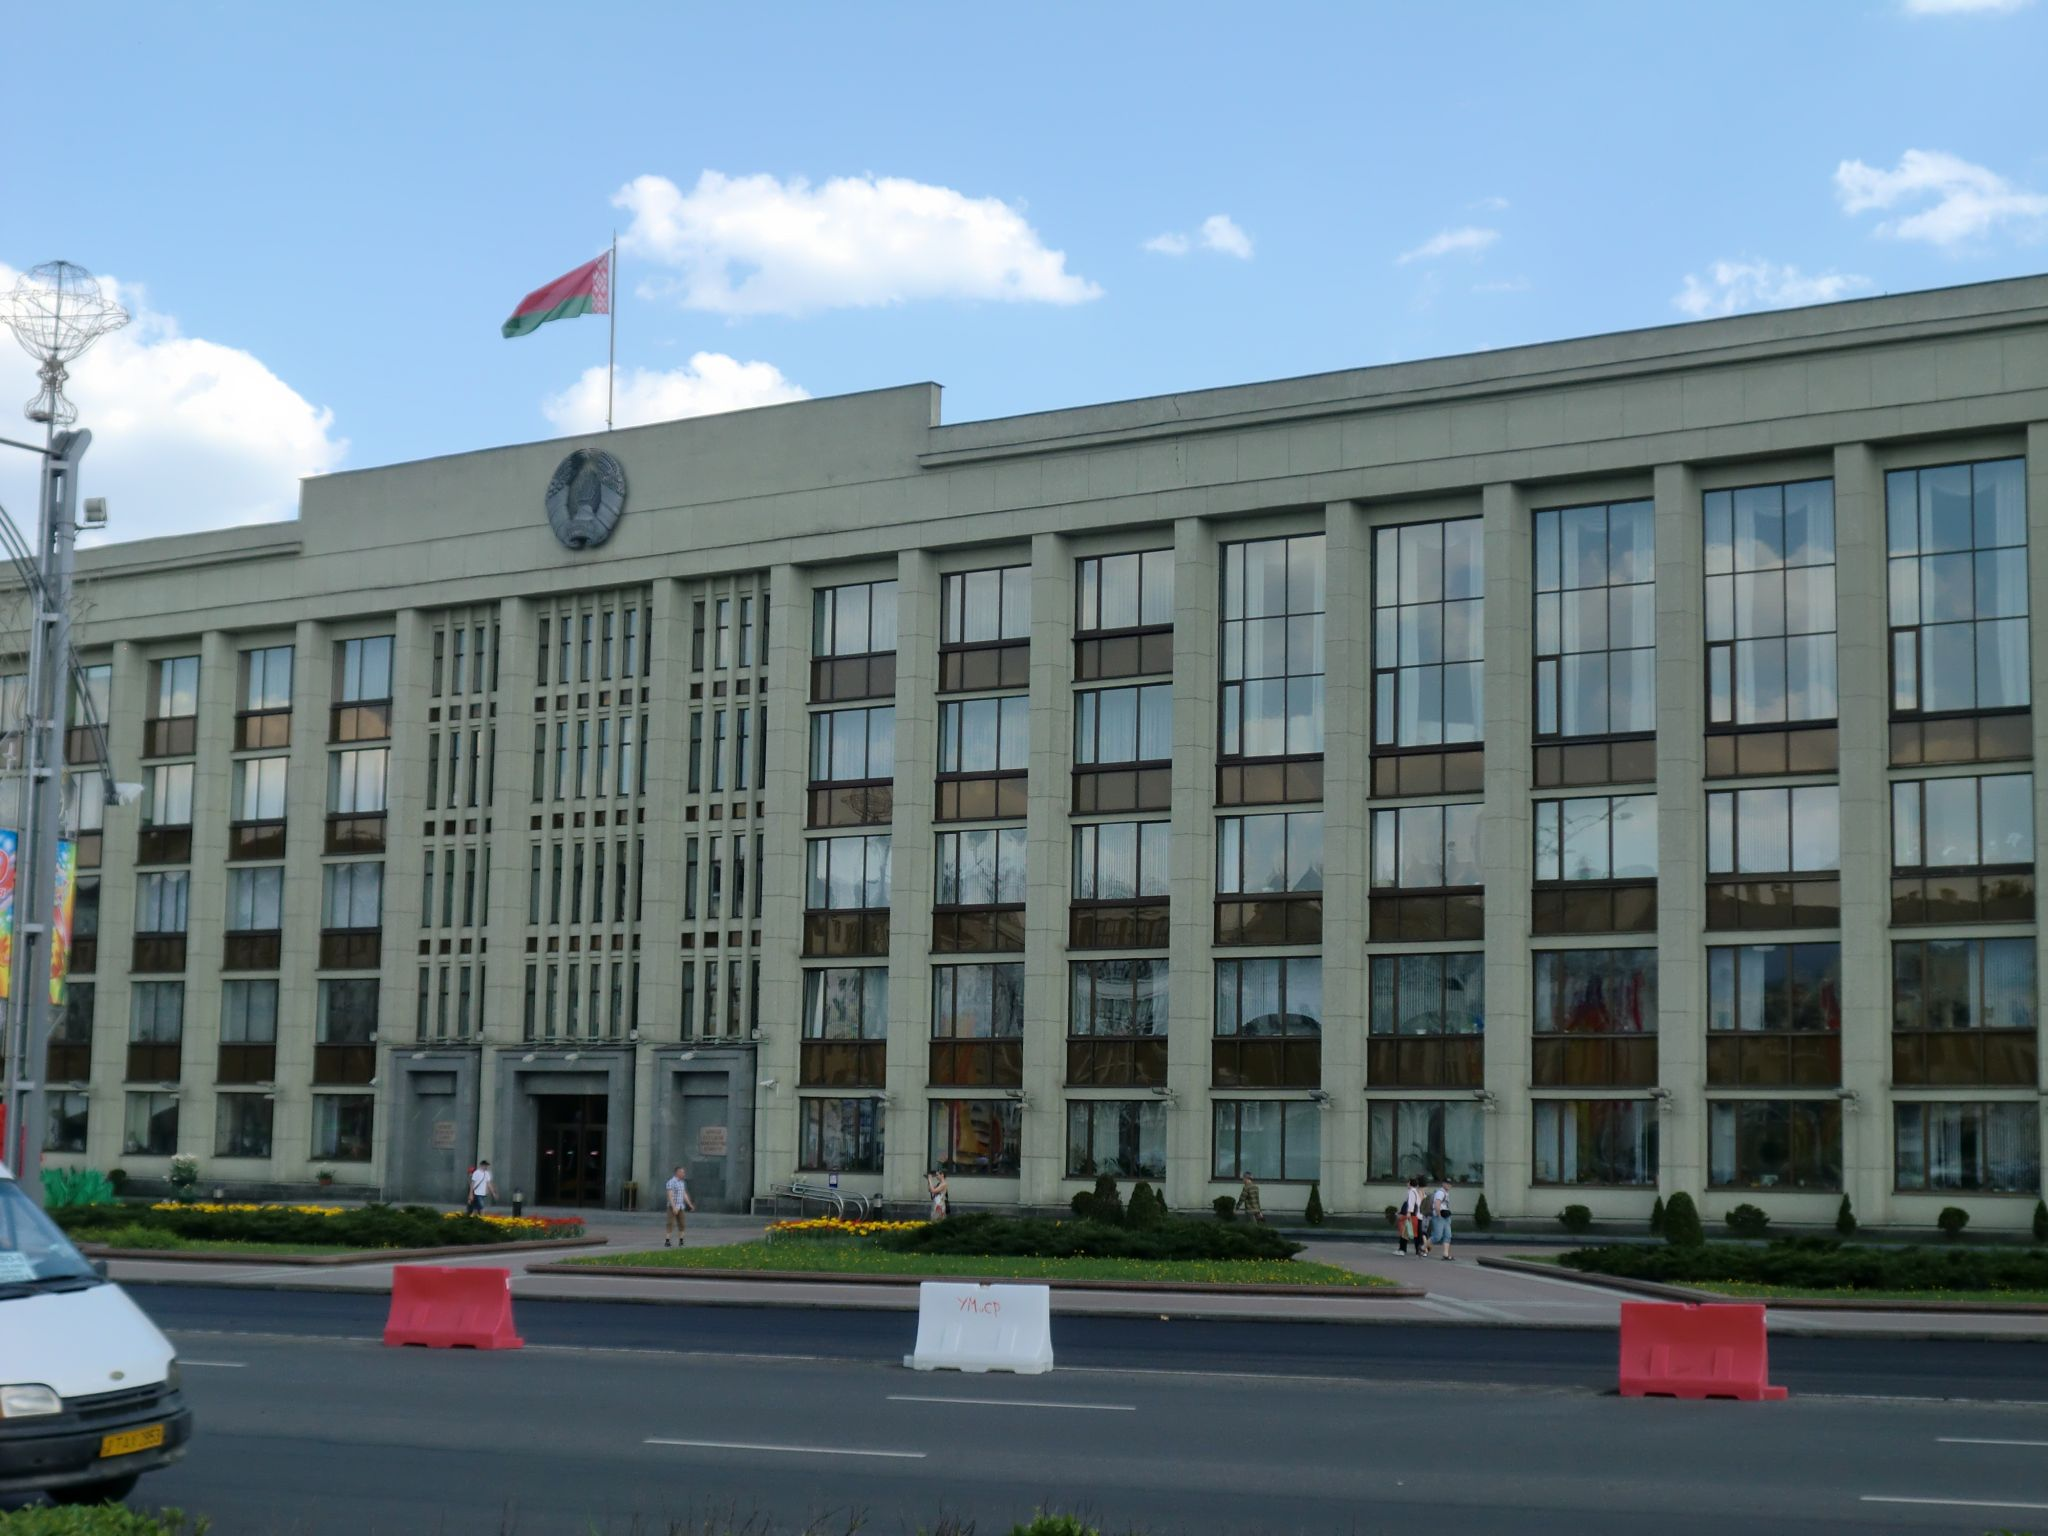 Minsk institutions 1 - Minsk, 1 amazing city you have to see